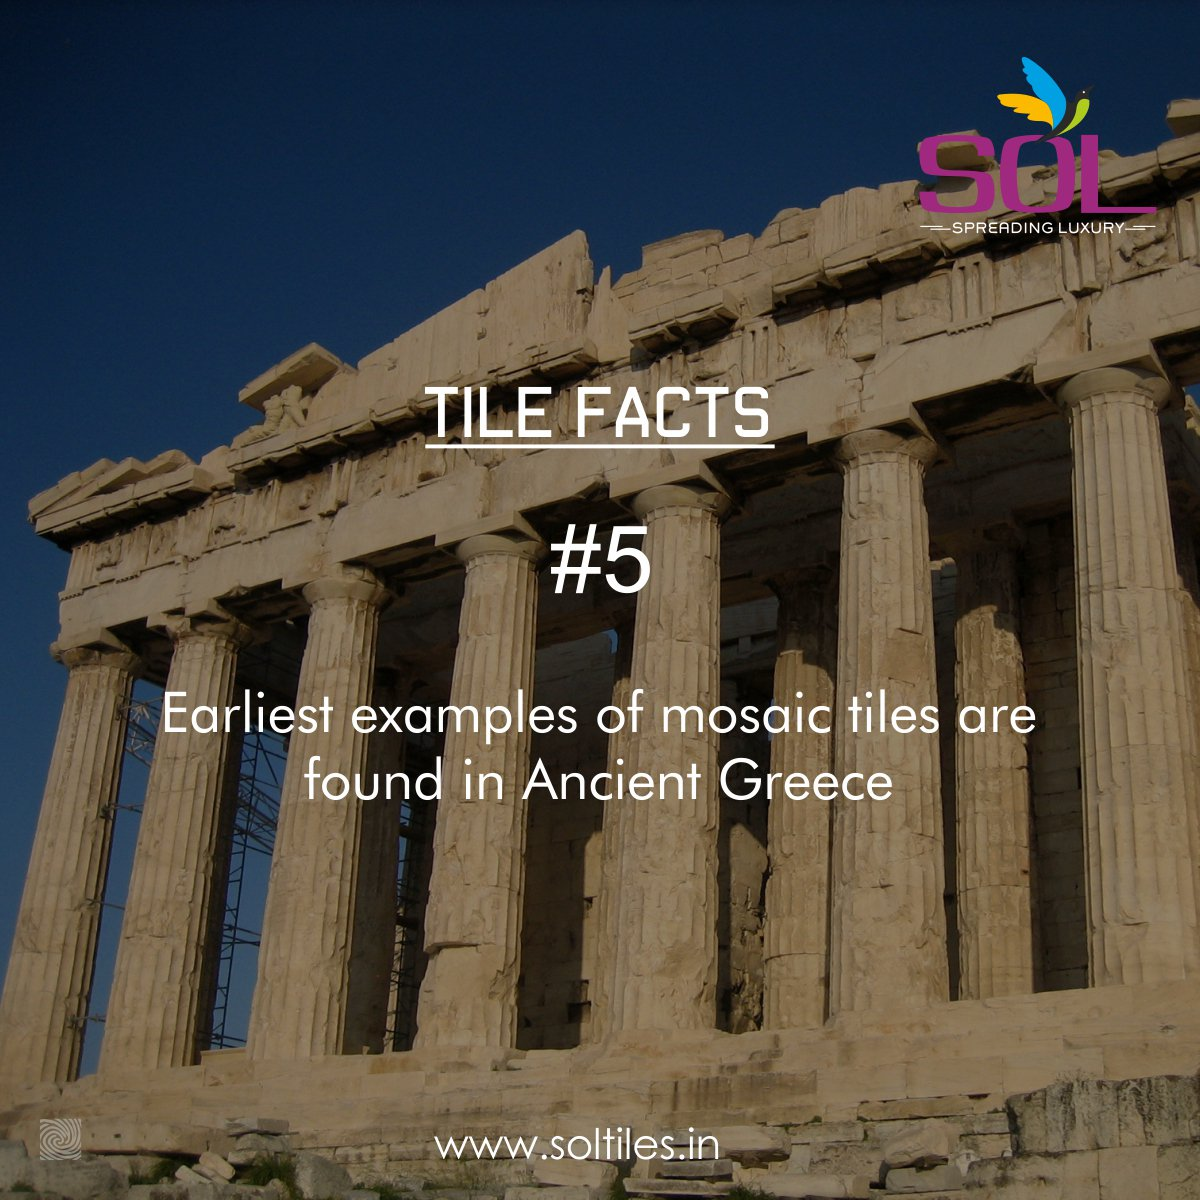 sol tiles on twitter tile facts 5 earliest examples of mosaic